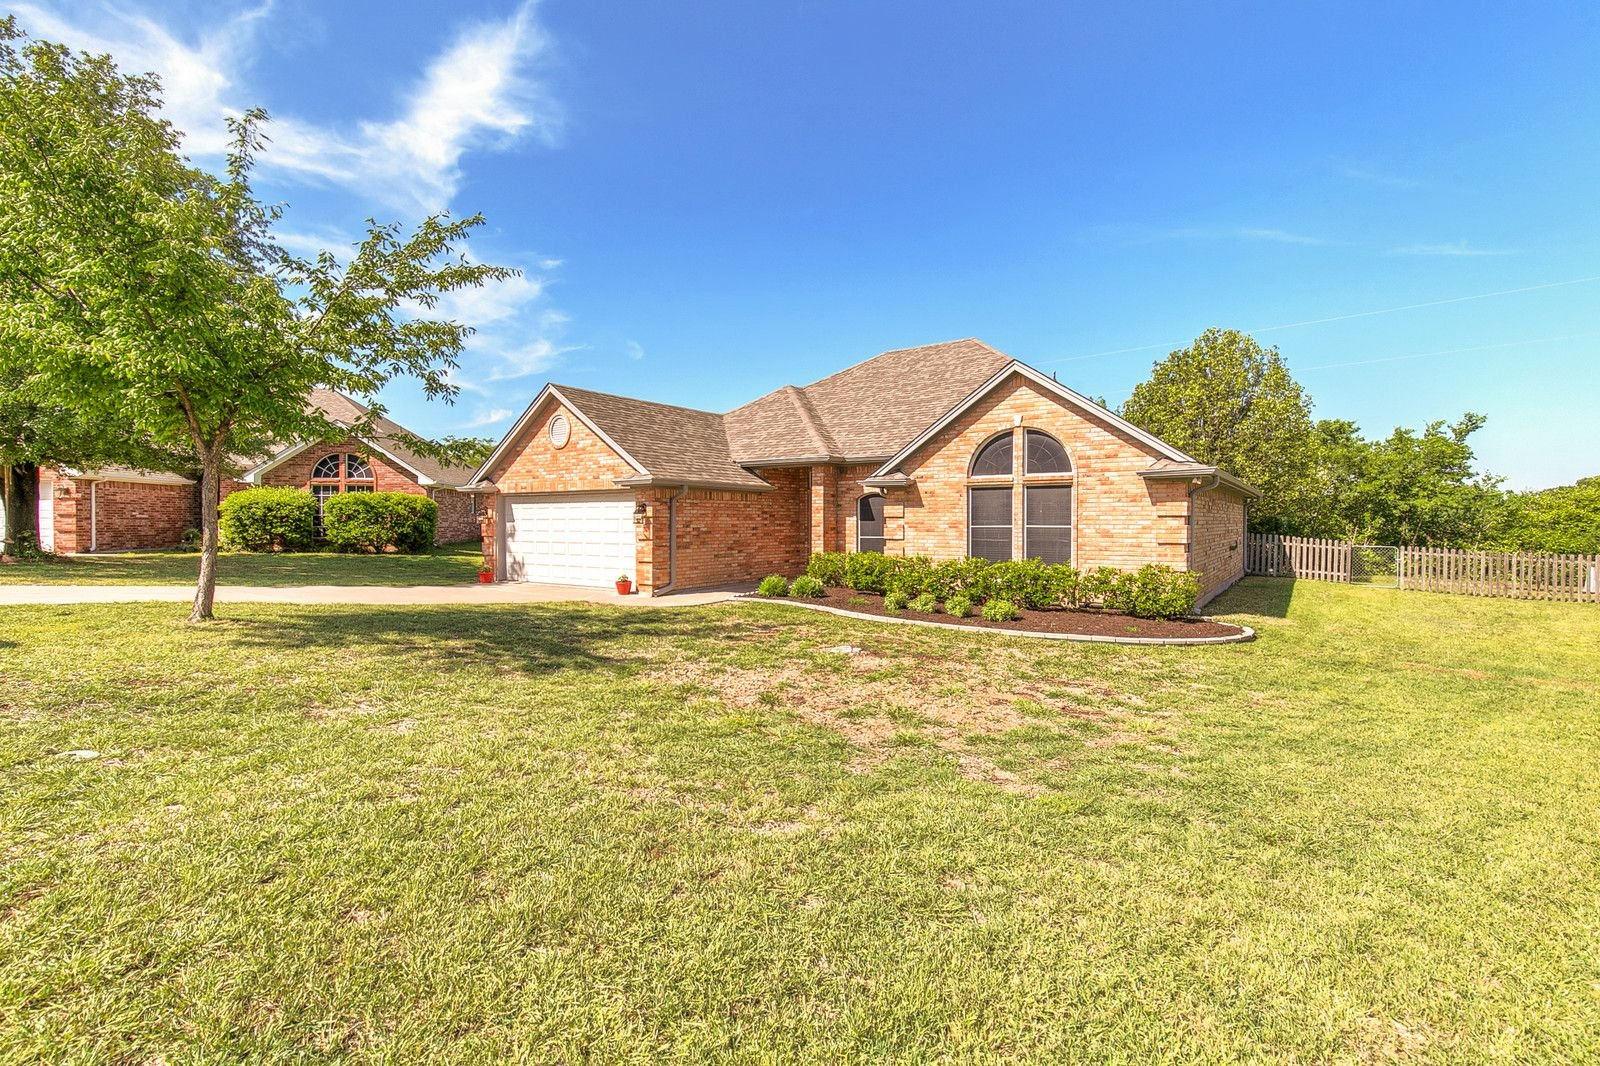 home for sale weatherford